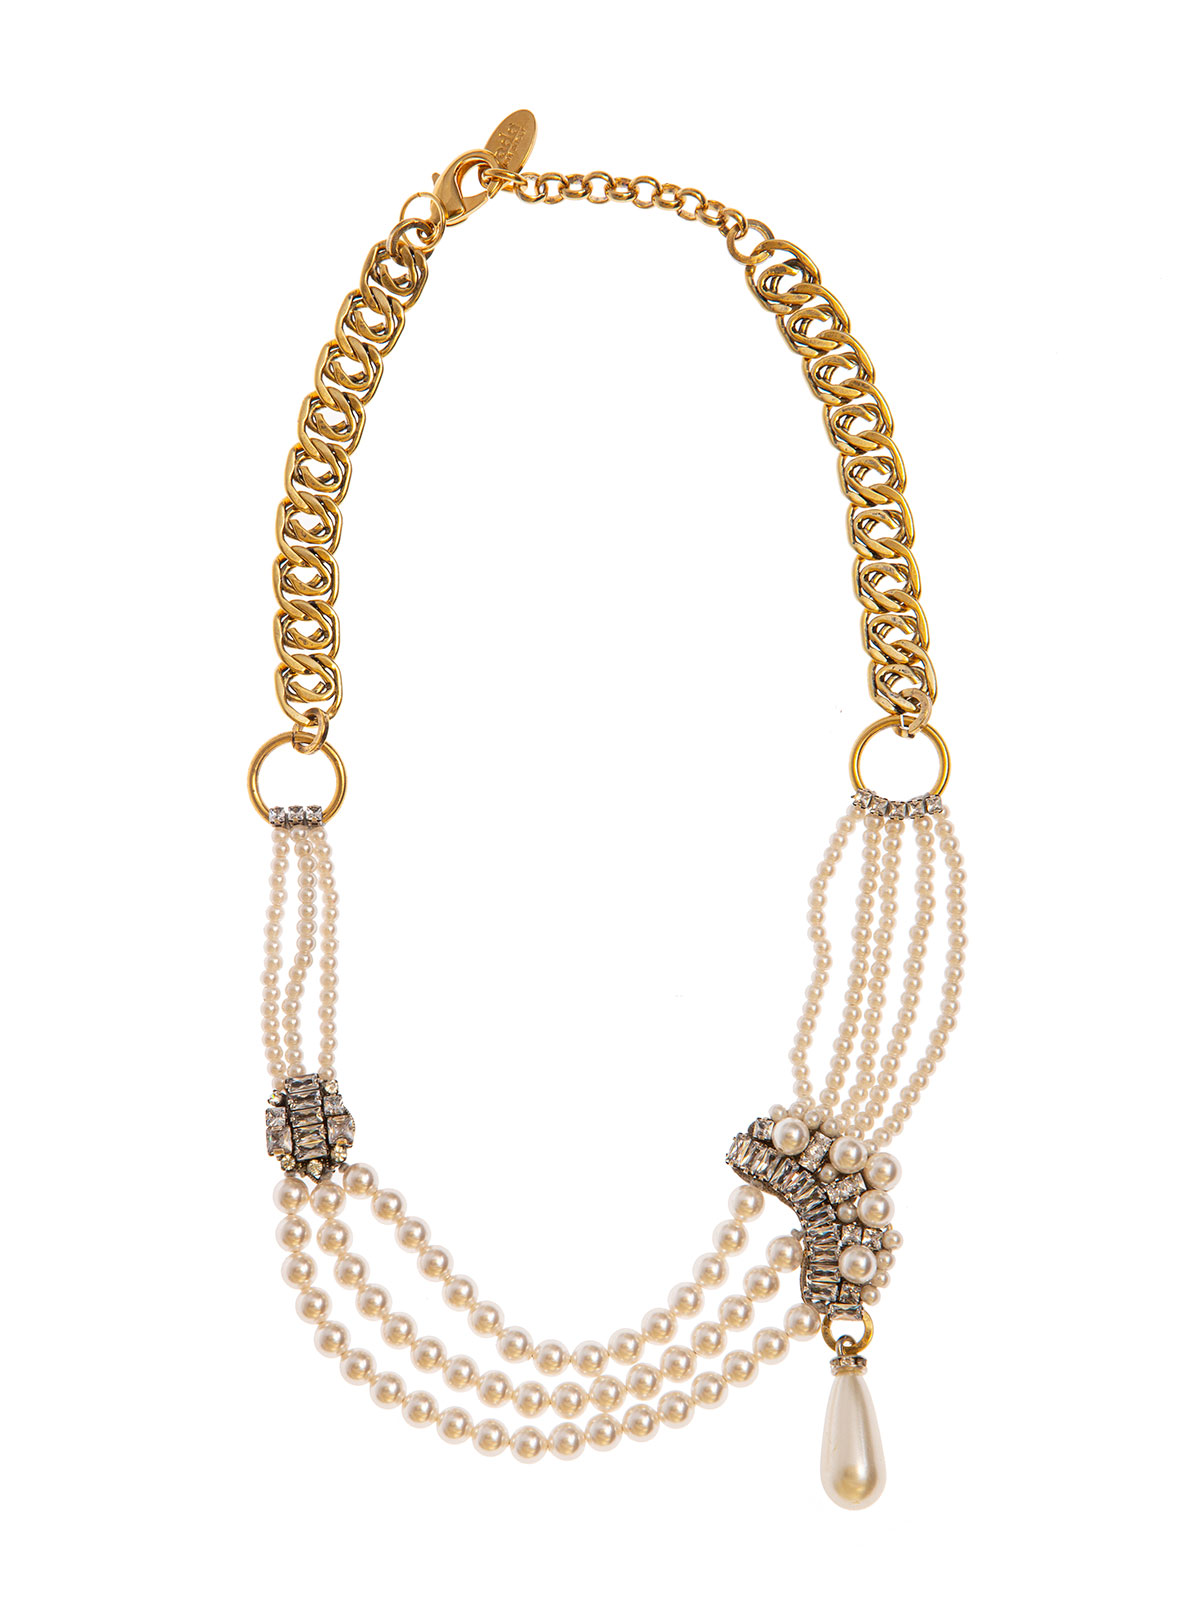 Chain necklace with pearl and crystal decoration